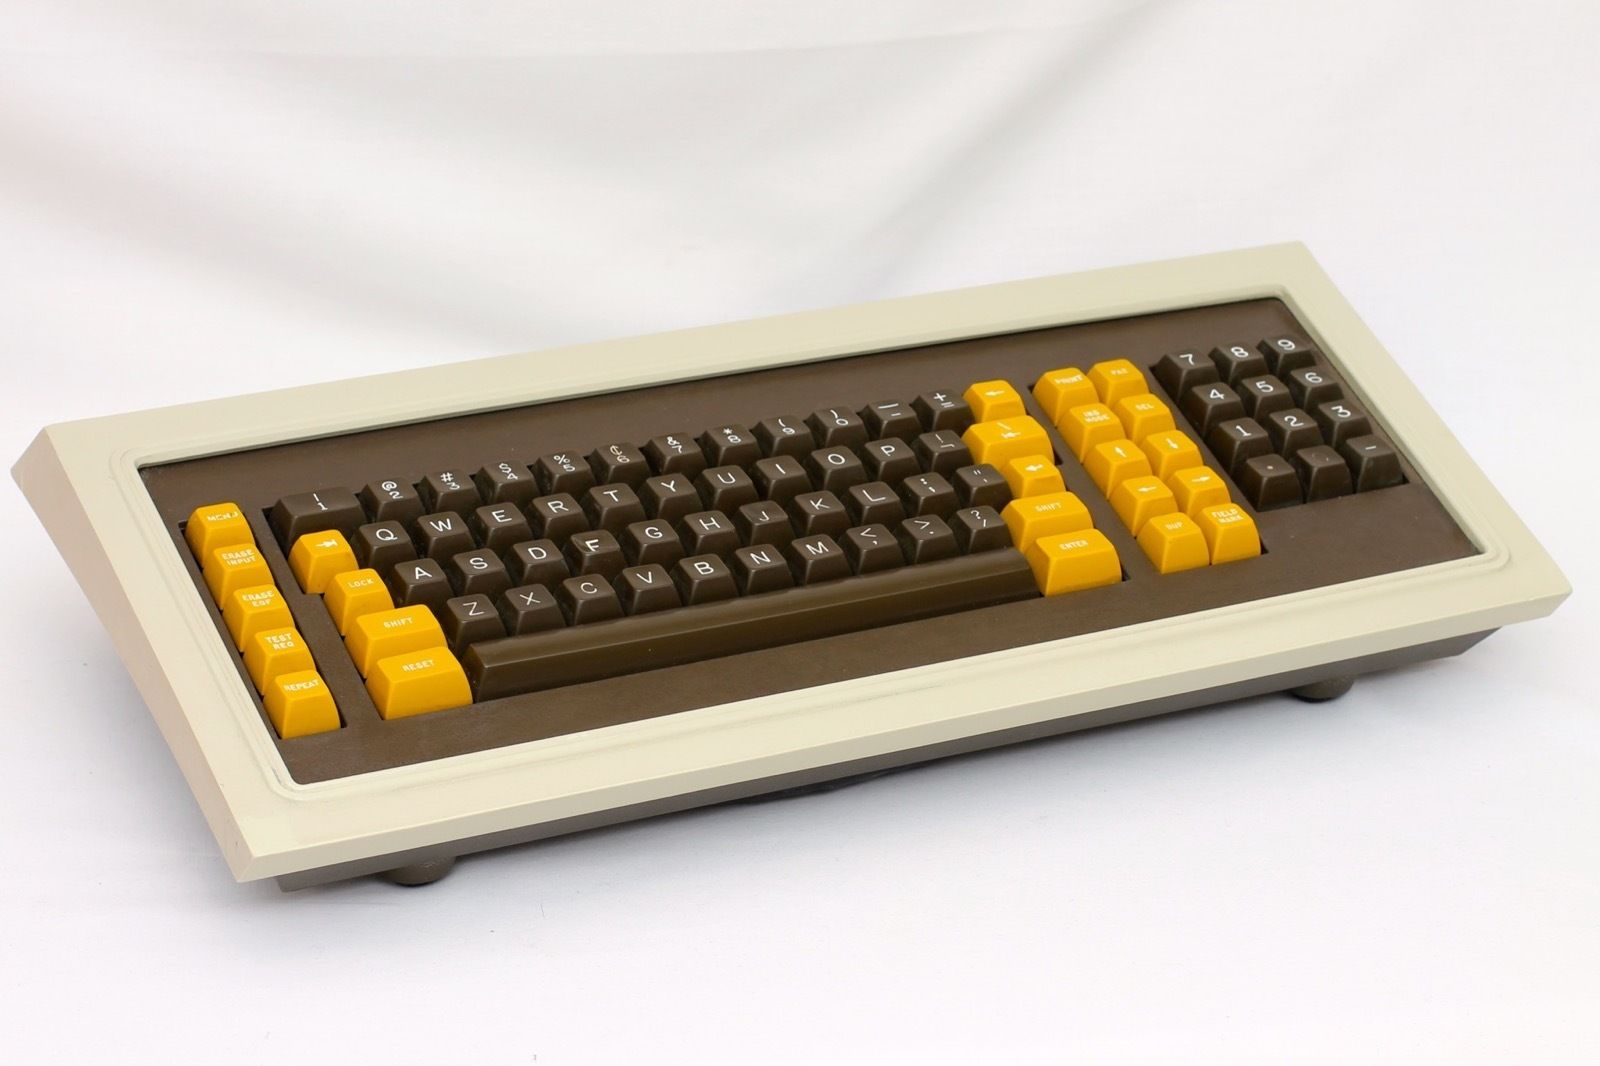 History of Mechanical Keyboards